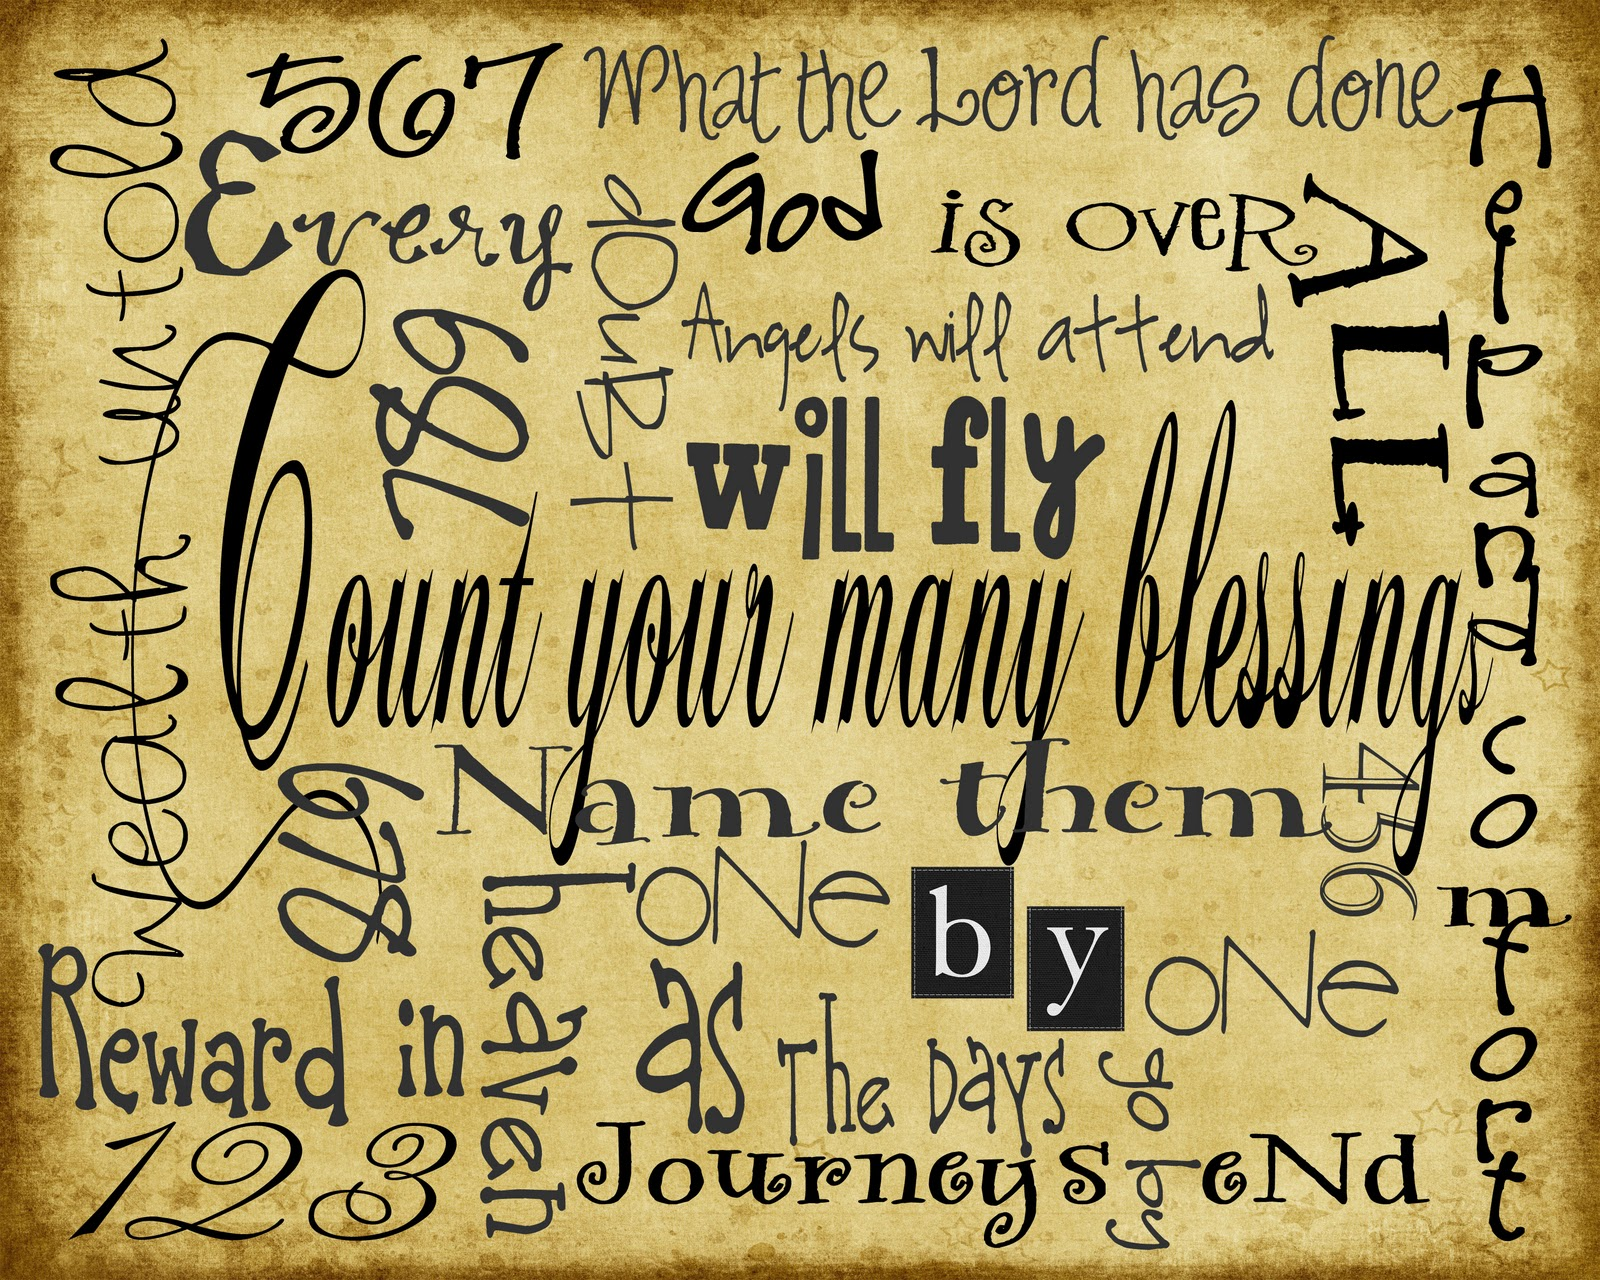 31 Wonderful Blessing Pictures And Images